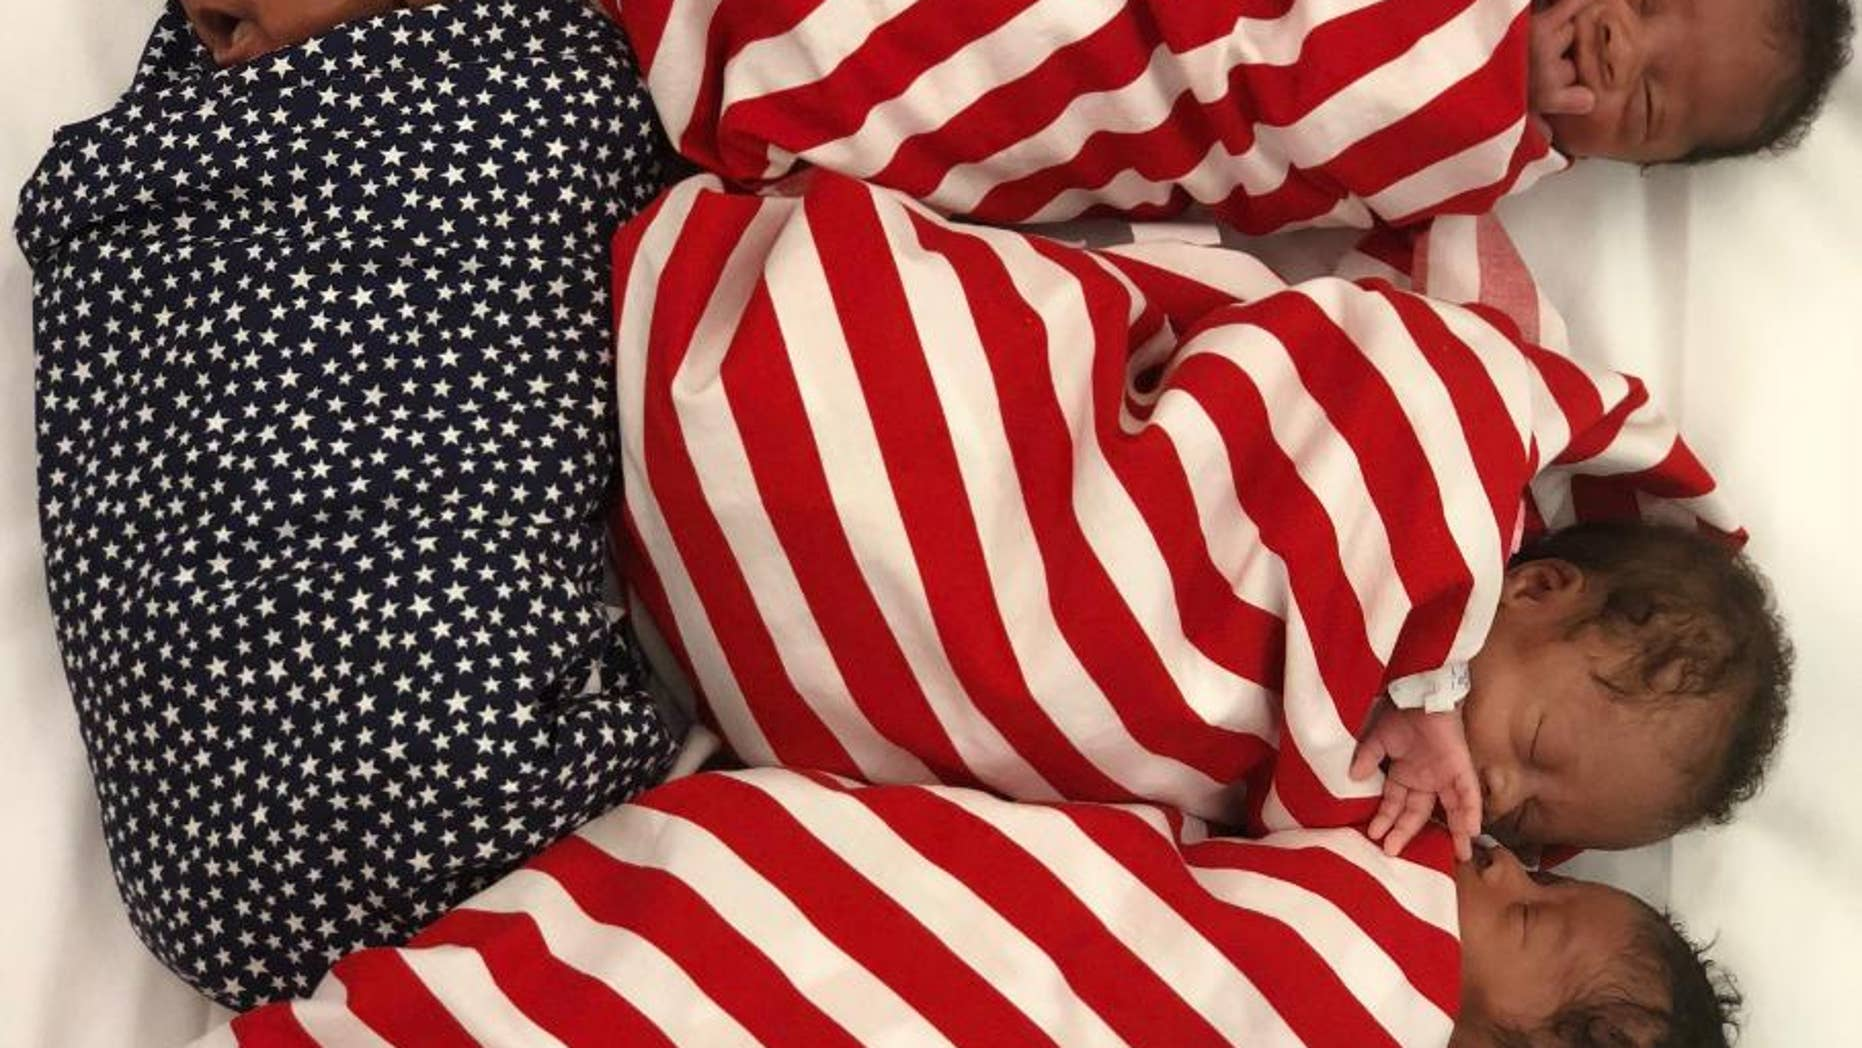 Quadruplets swaddled in stars and stripes going home on Fourth of July